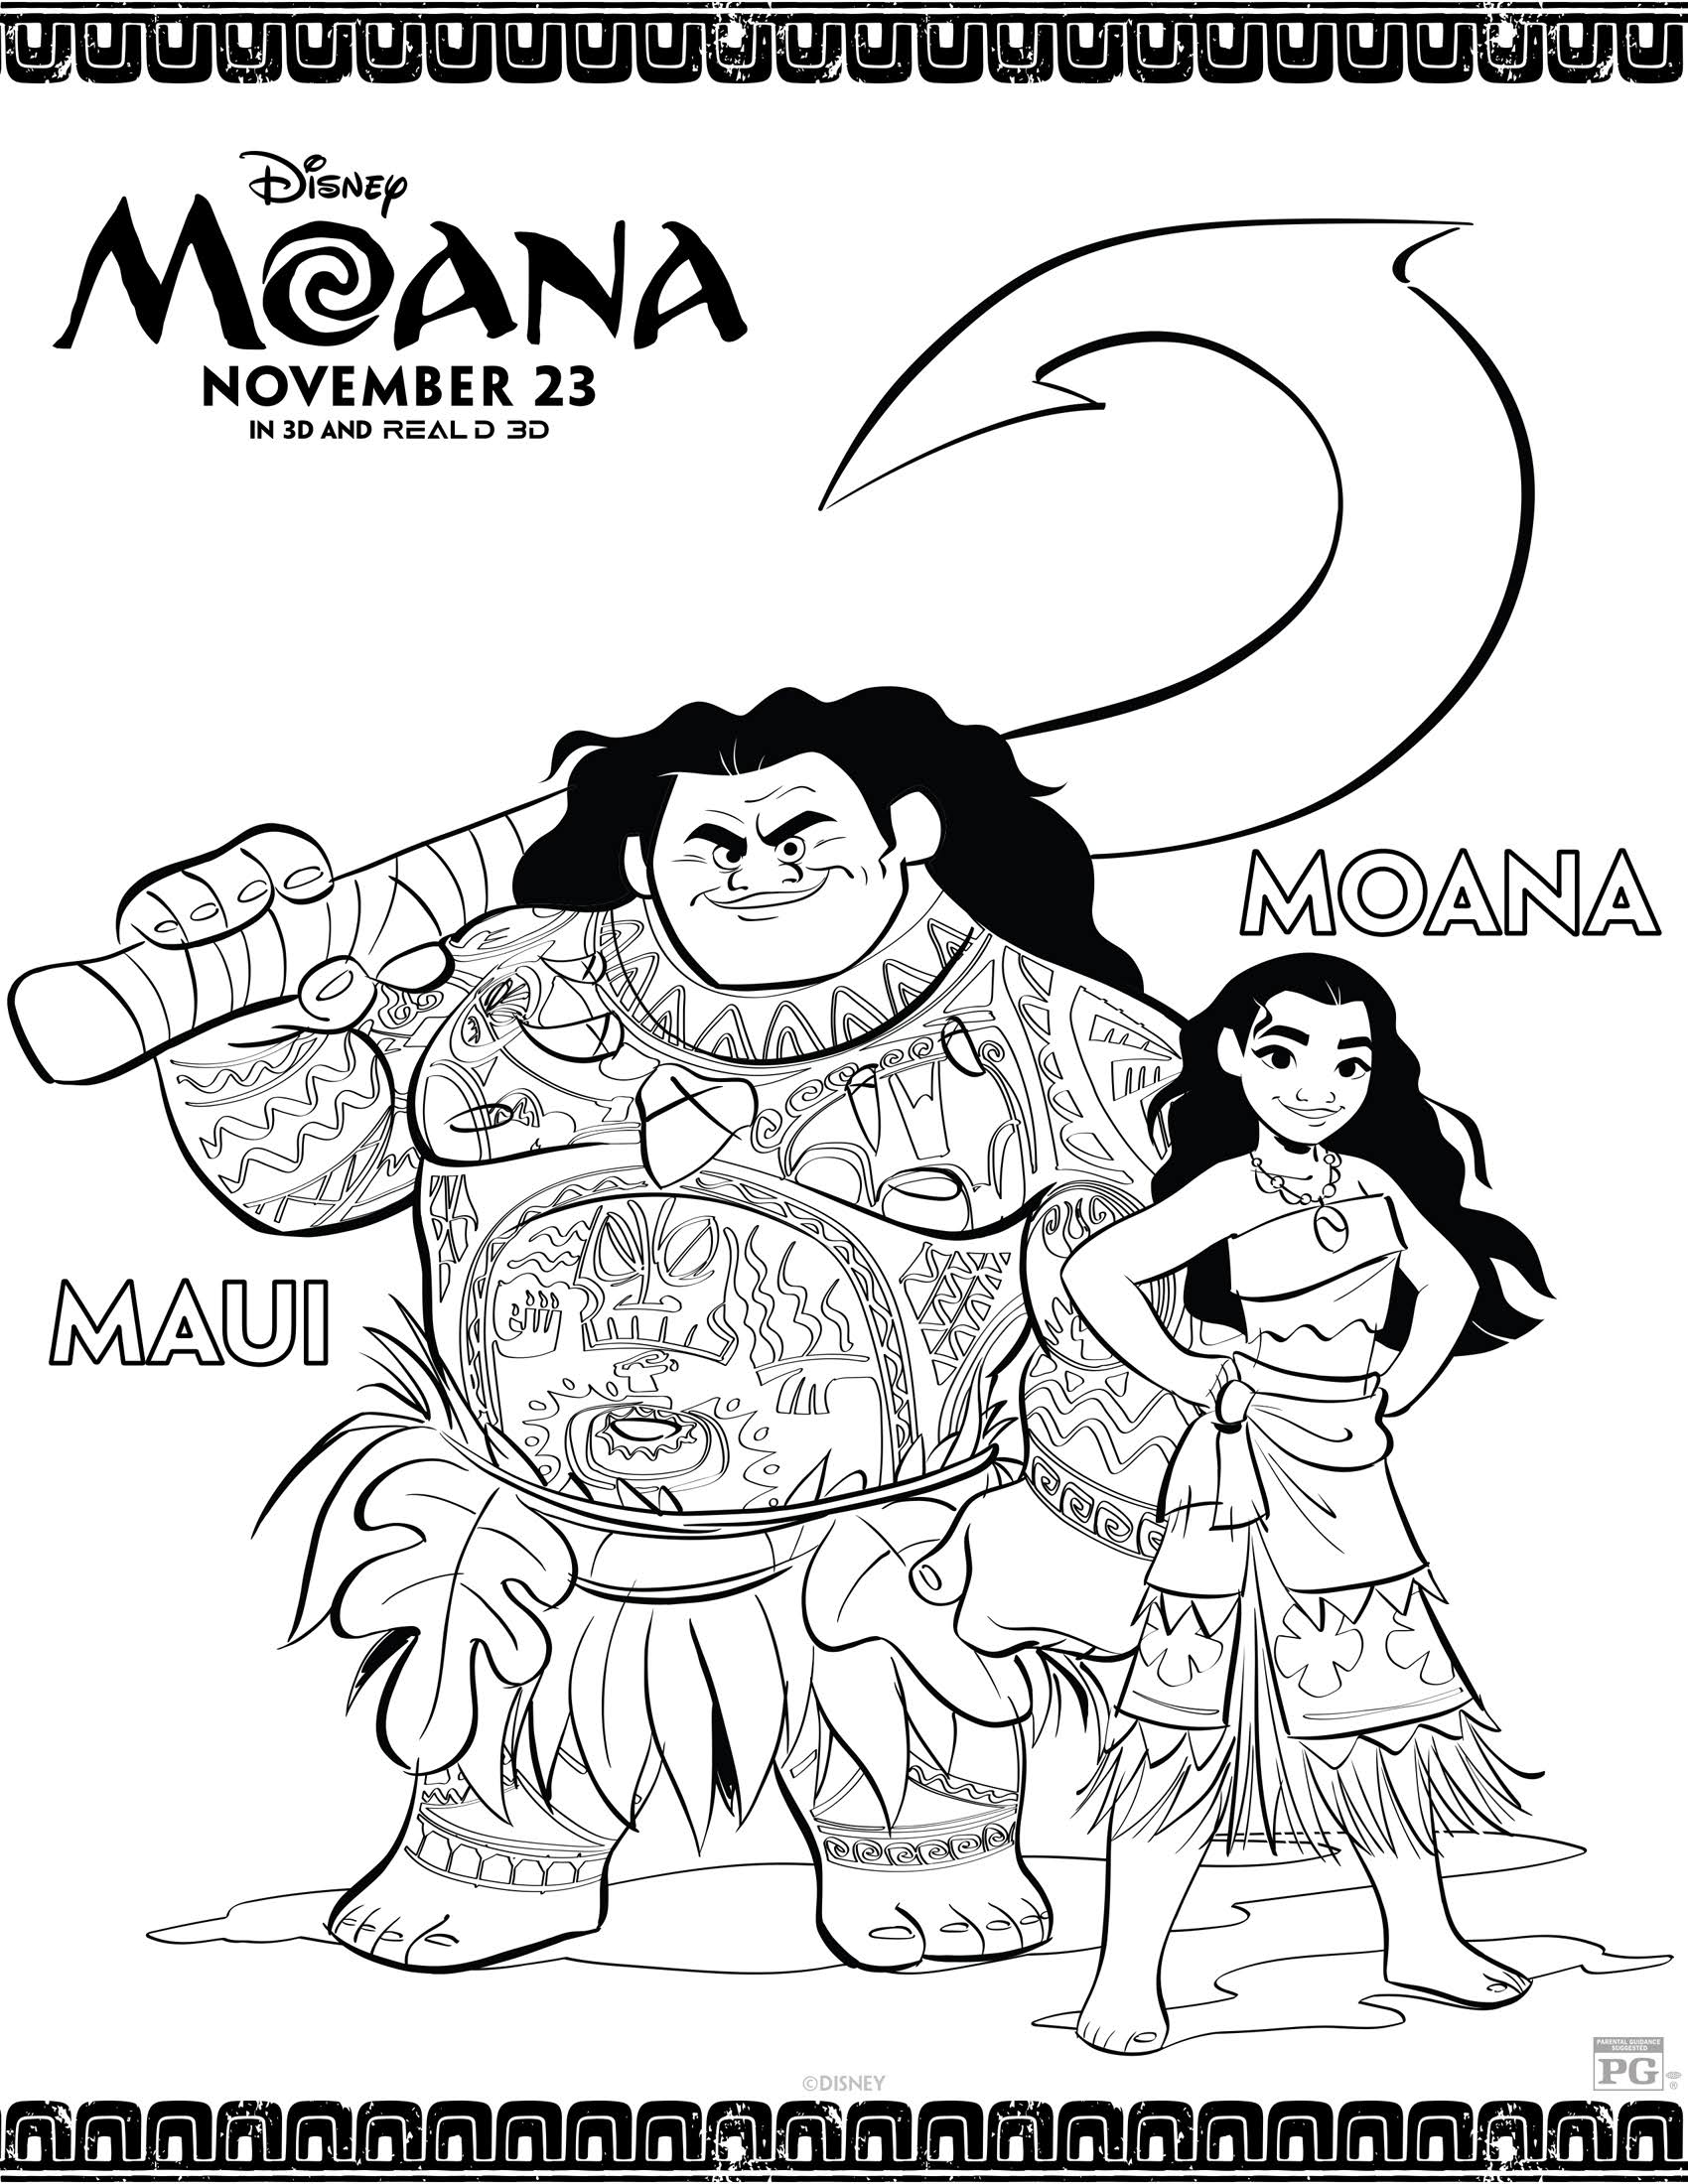 Disney's Moana Coloring Pages and Activity Sheets Printables!